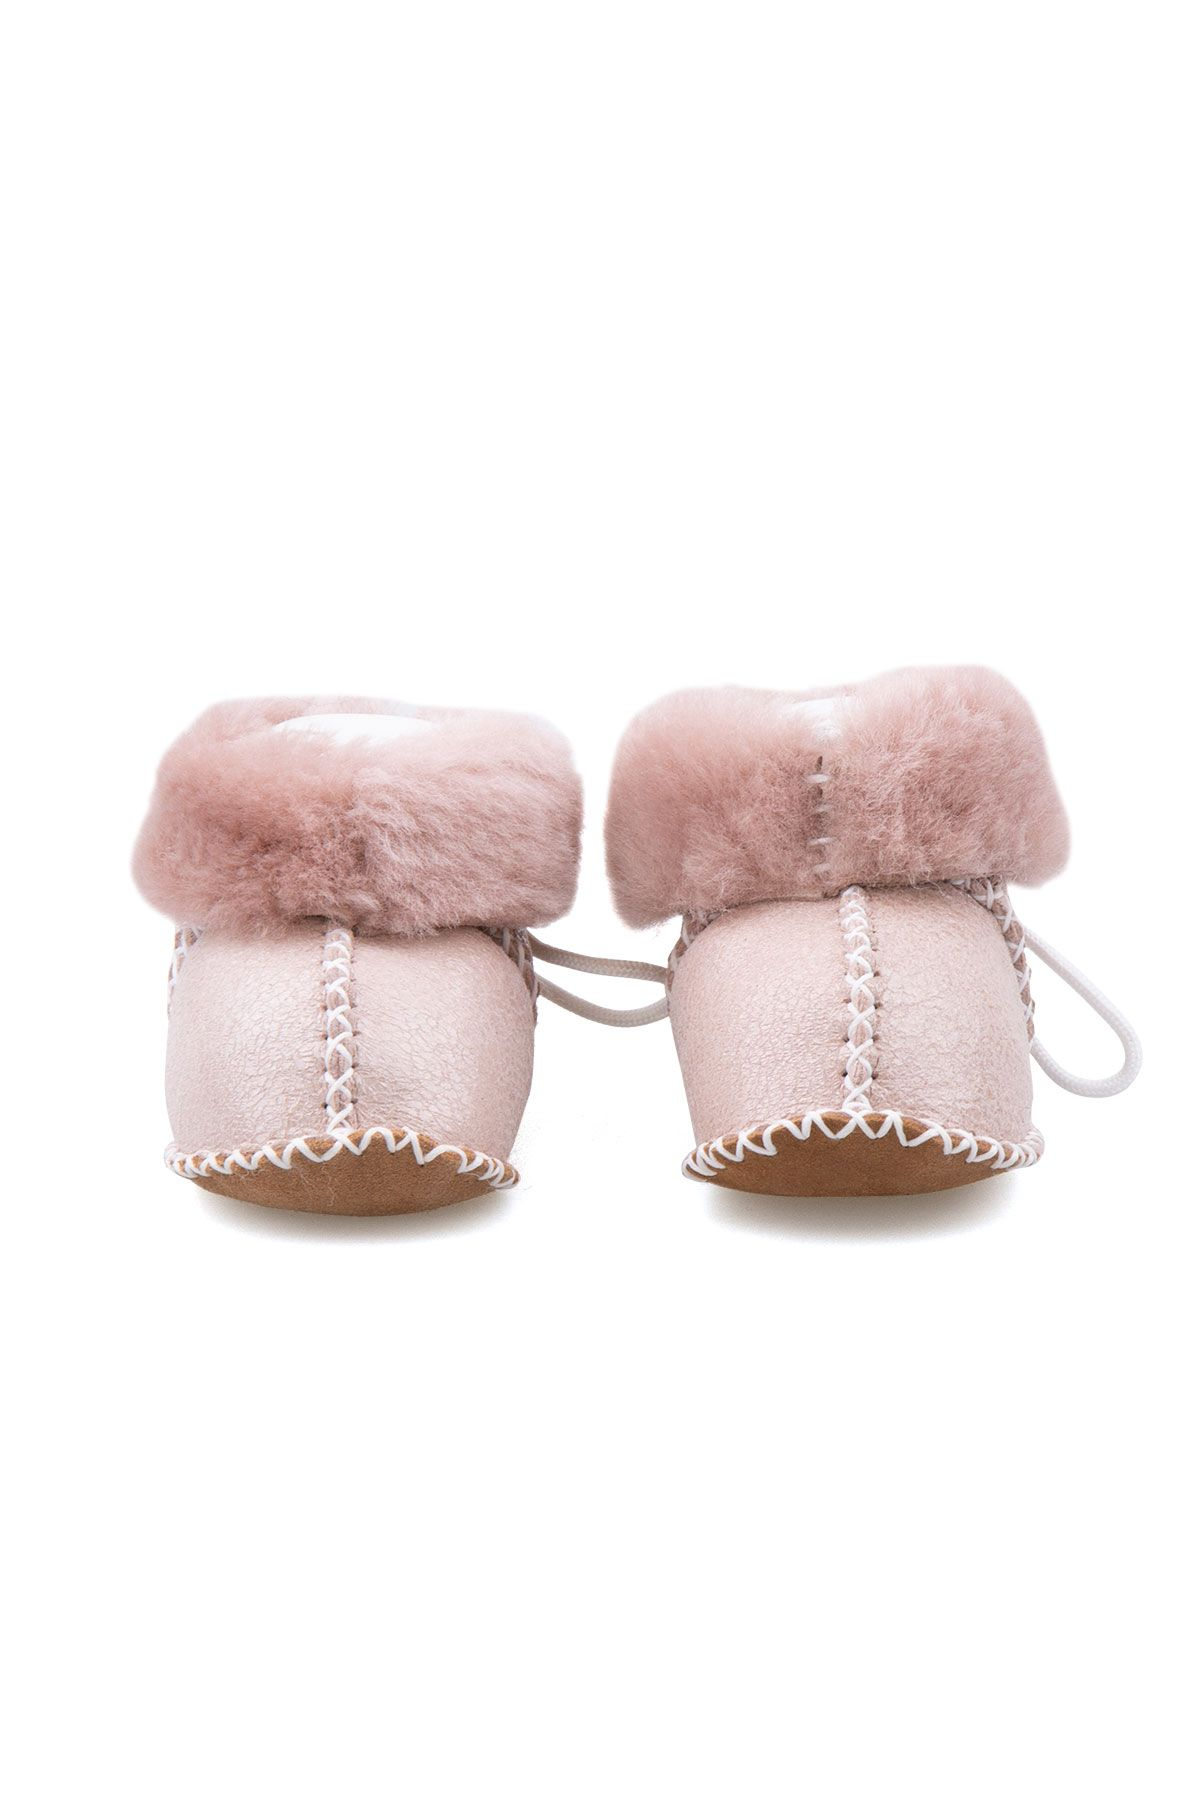 Pegia Shearling Baby's Booties 141113 Powdery